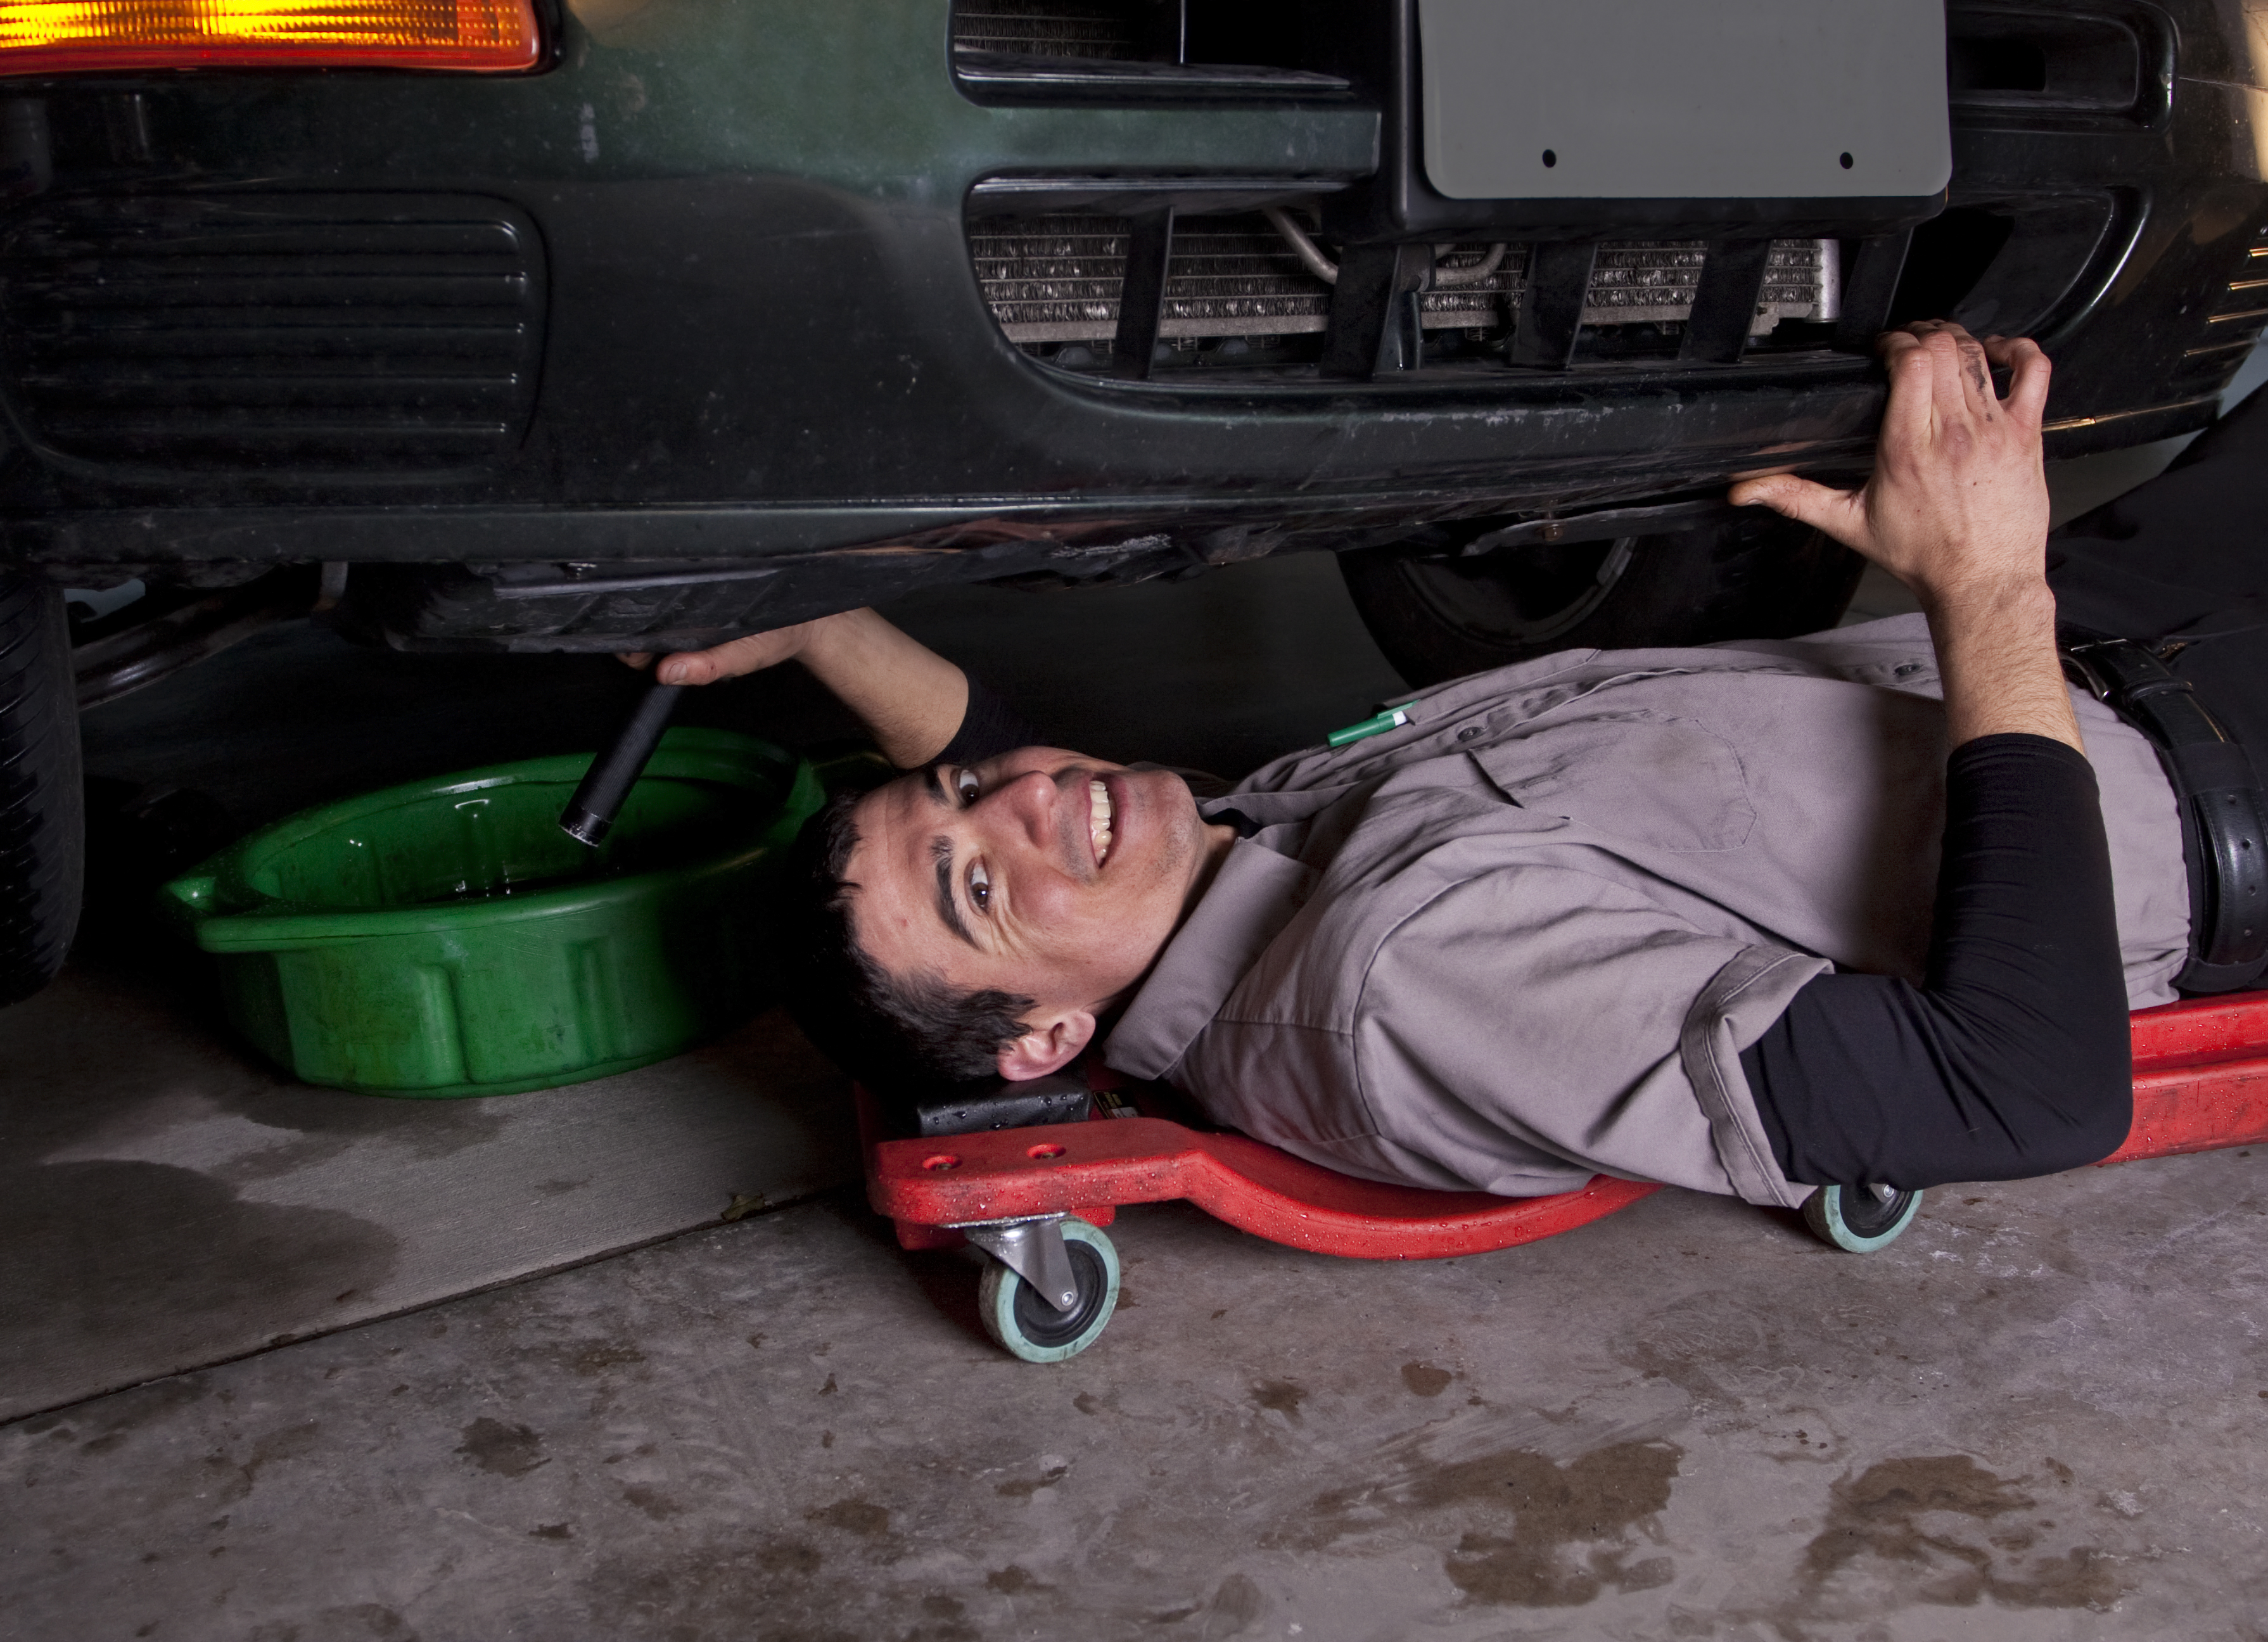 An auto mechanic working under a car doing an oil change